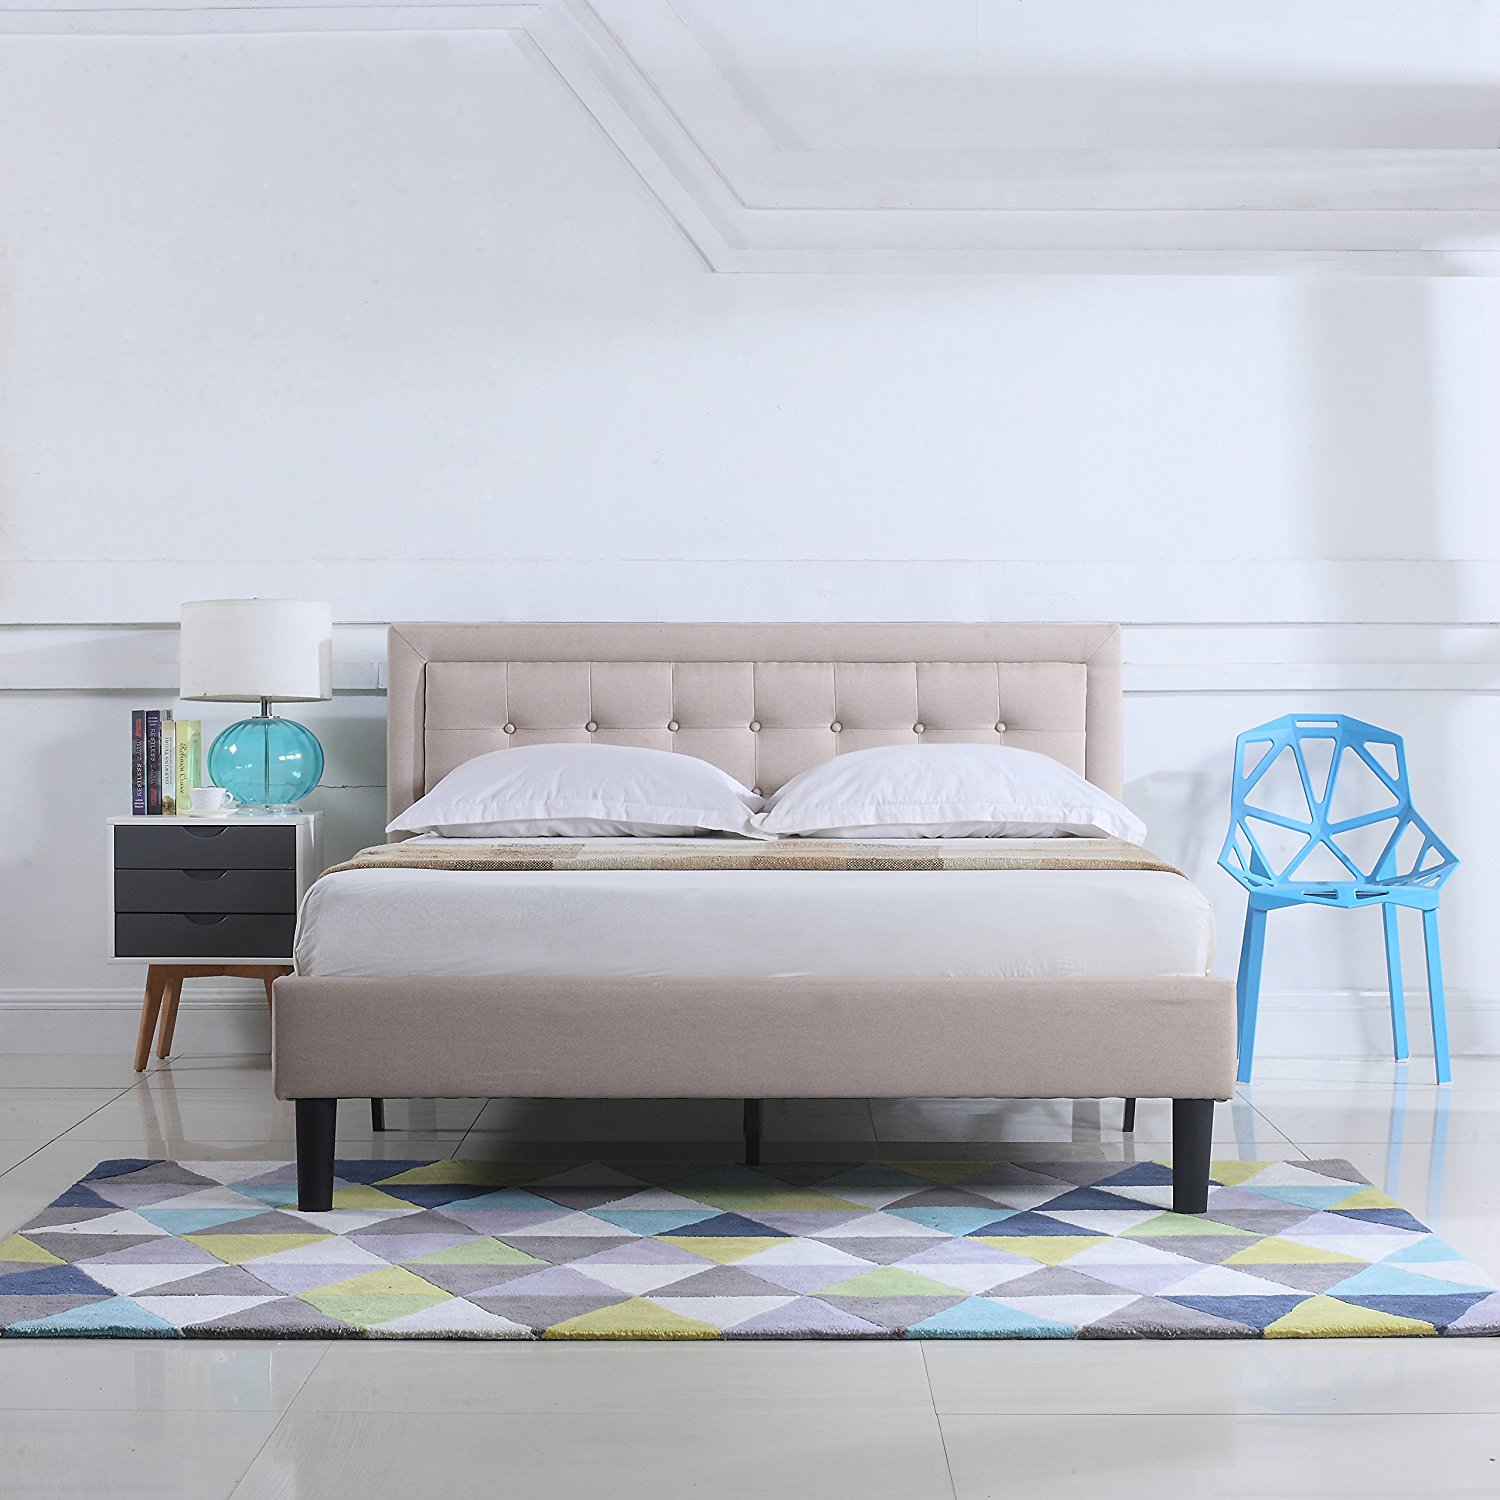 Cheap Low Single Bed Frame Find Low Single Bed Frame Deals On Line